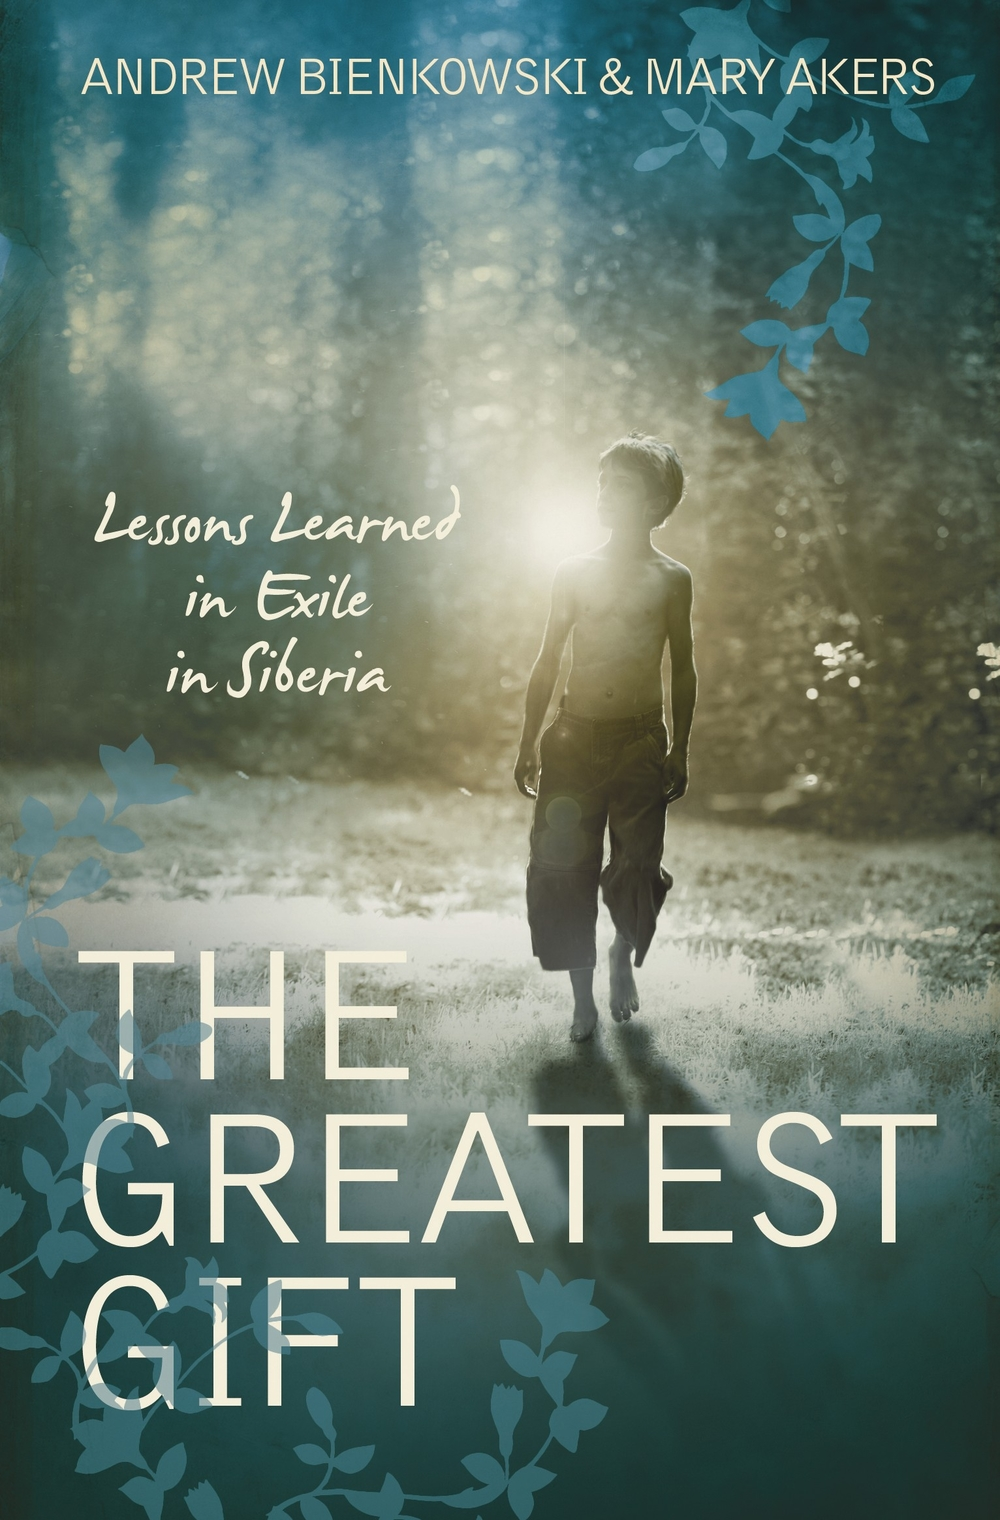 THE GREATEST GIFT  Non-Fiction (Memoir) 254 pages Simon & Schuster - March 2009